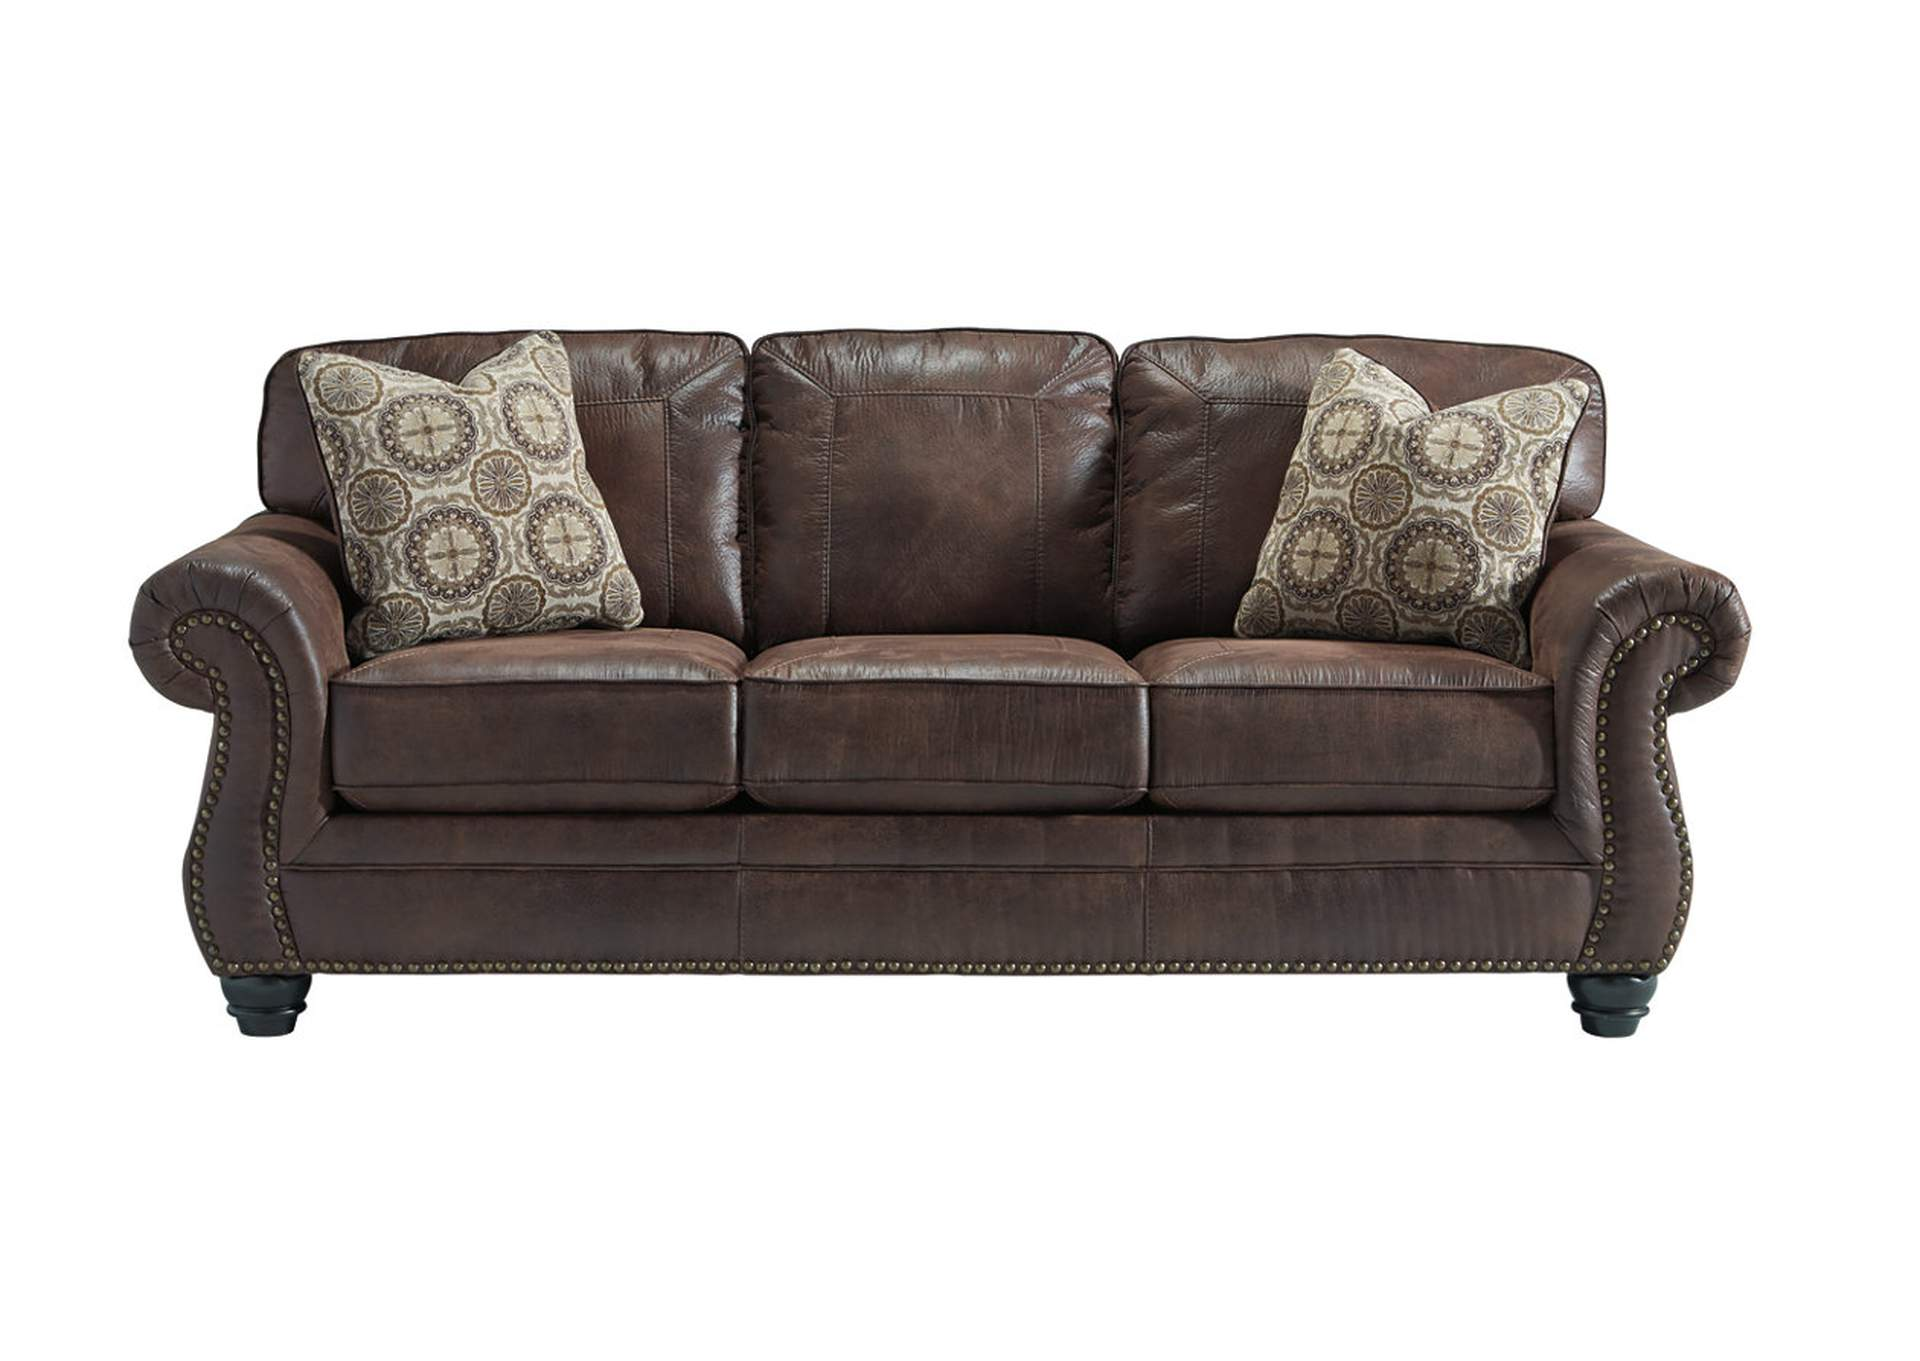 Furniture liquidators home center breville espresso sofa for Furniture liquidators